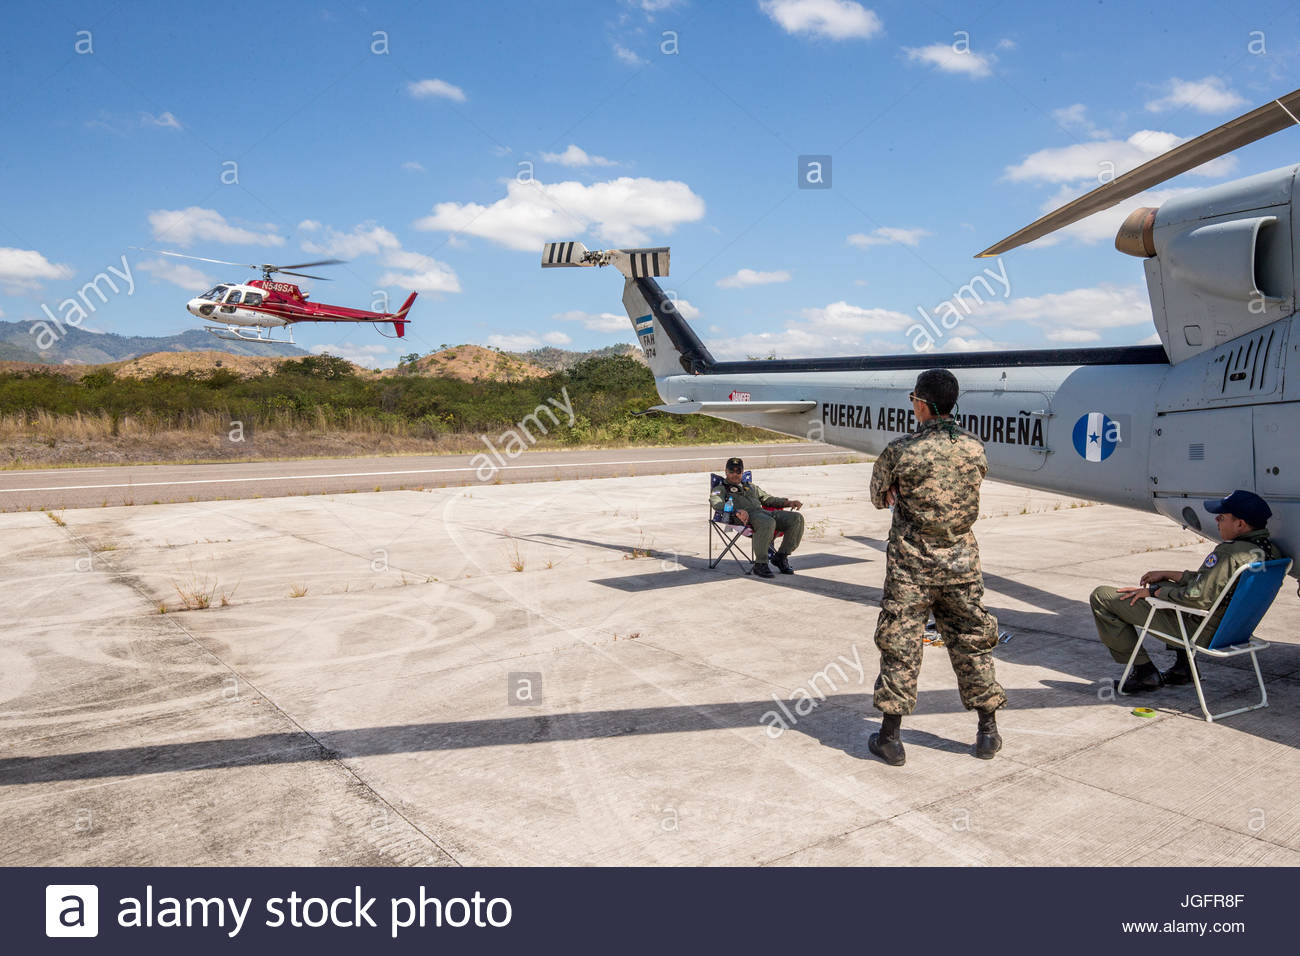 A Honduran military helicopter awaits a repair as an American chopper returns from taking members of an expedition - Stock Image